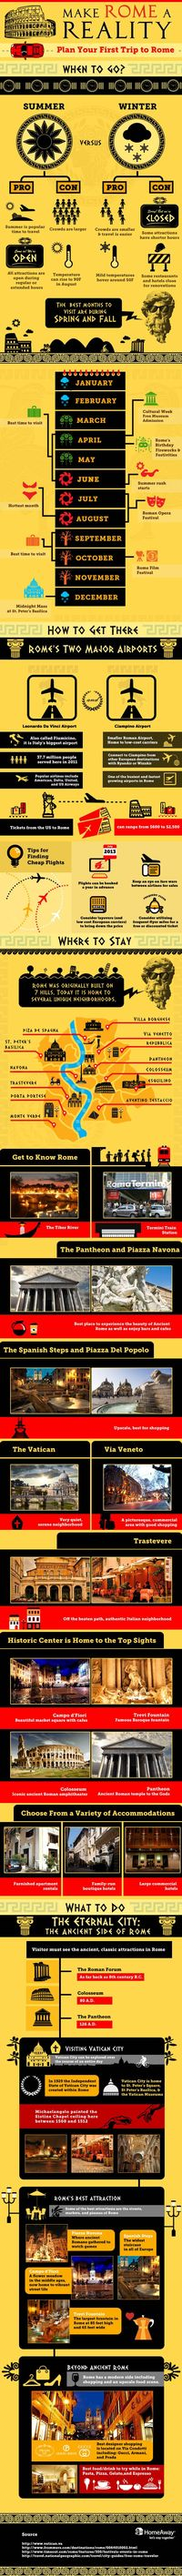 Make Rome a Reality Infographic Travel Planner